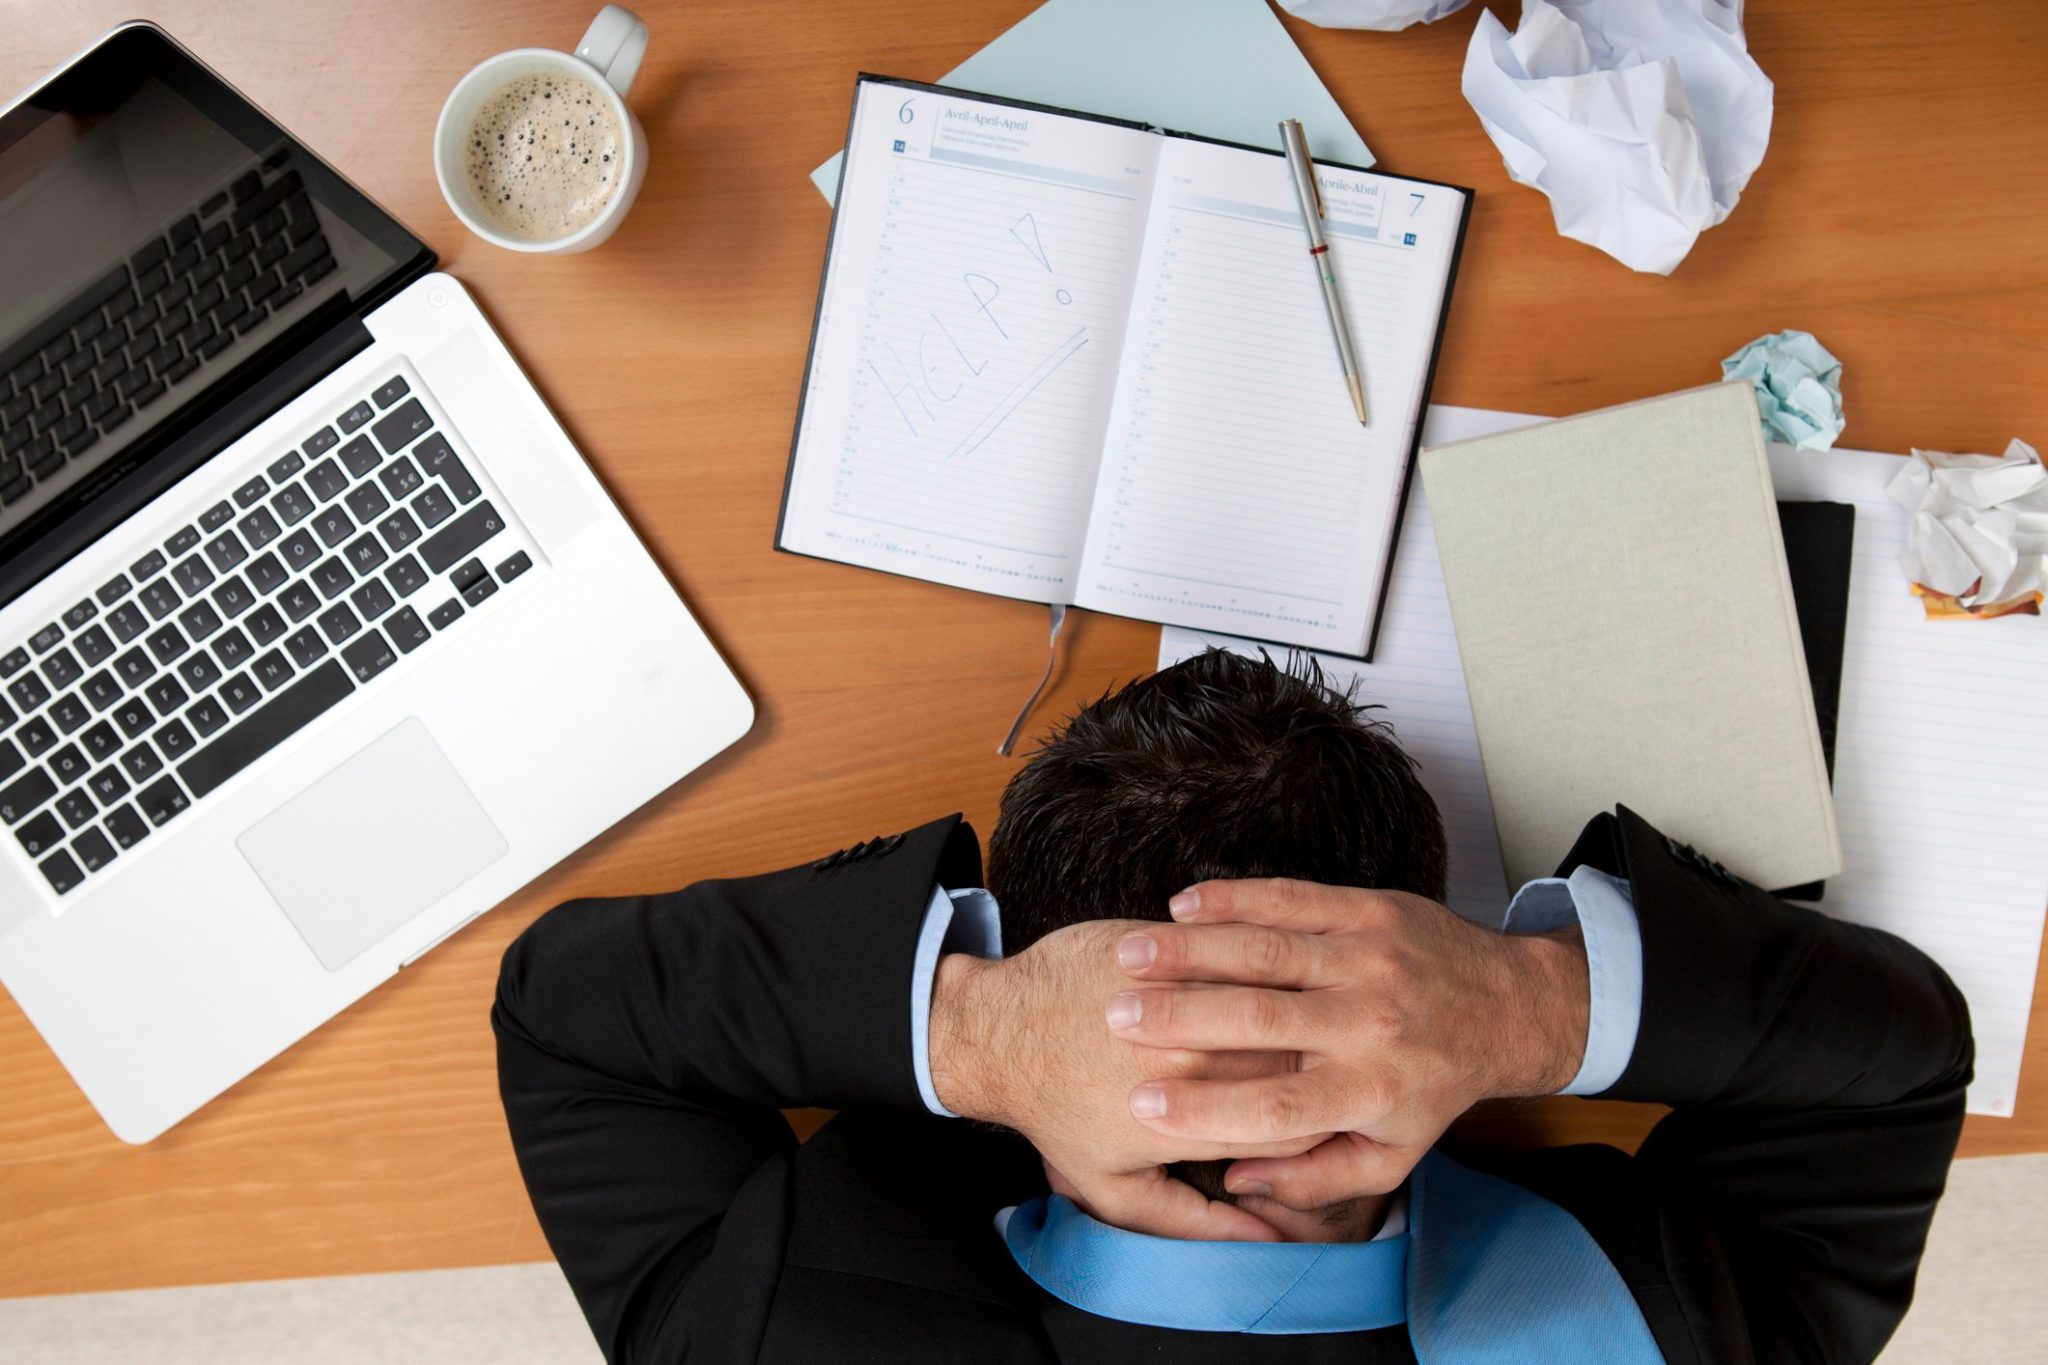 Employee with head down on desk